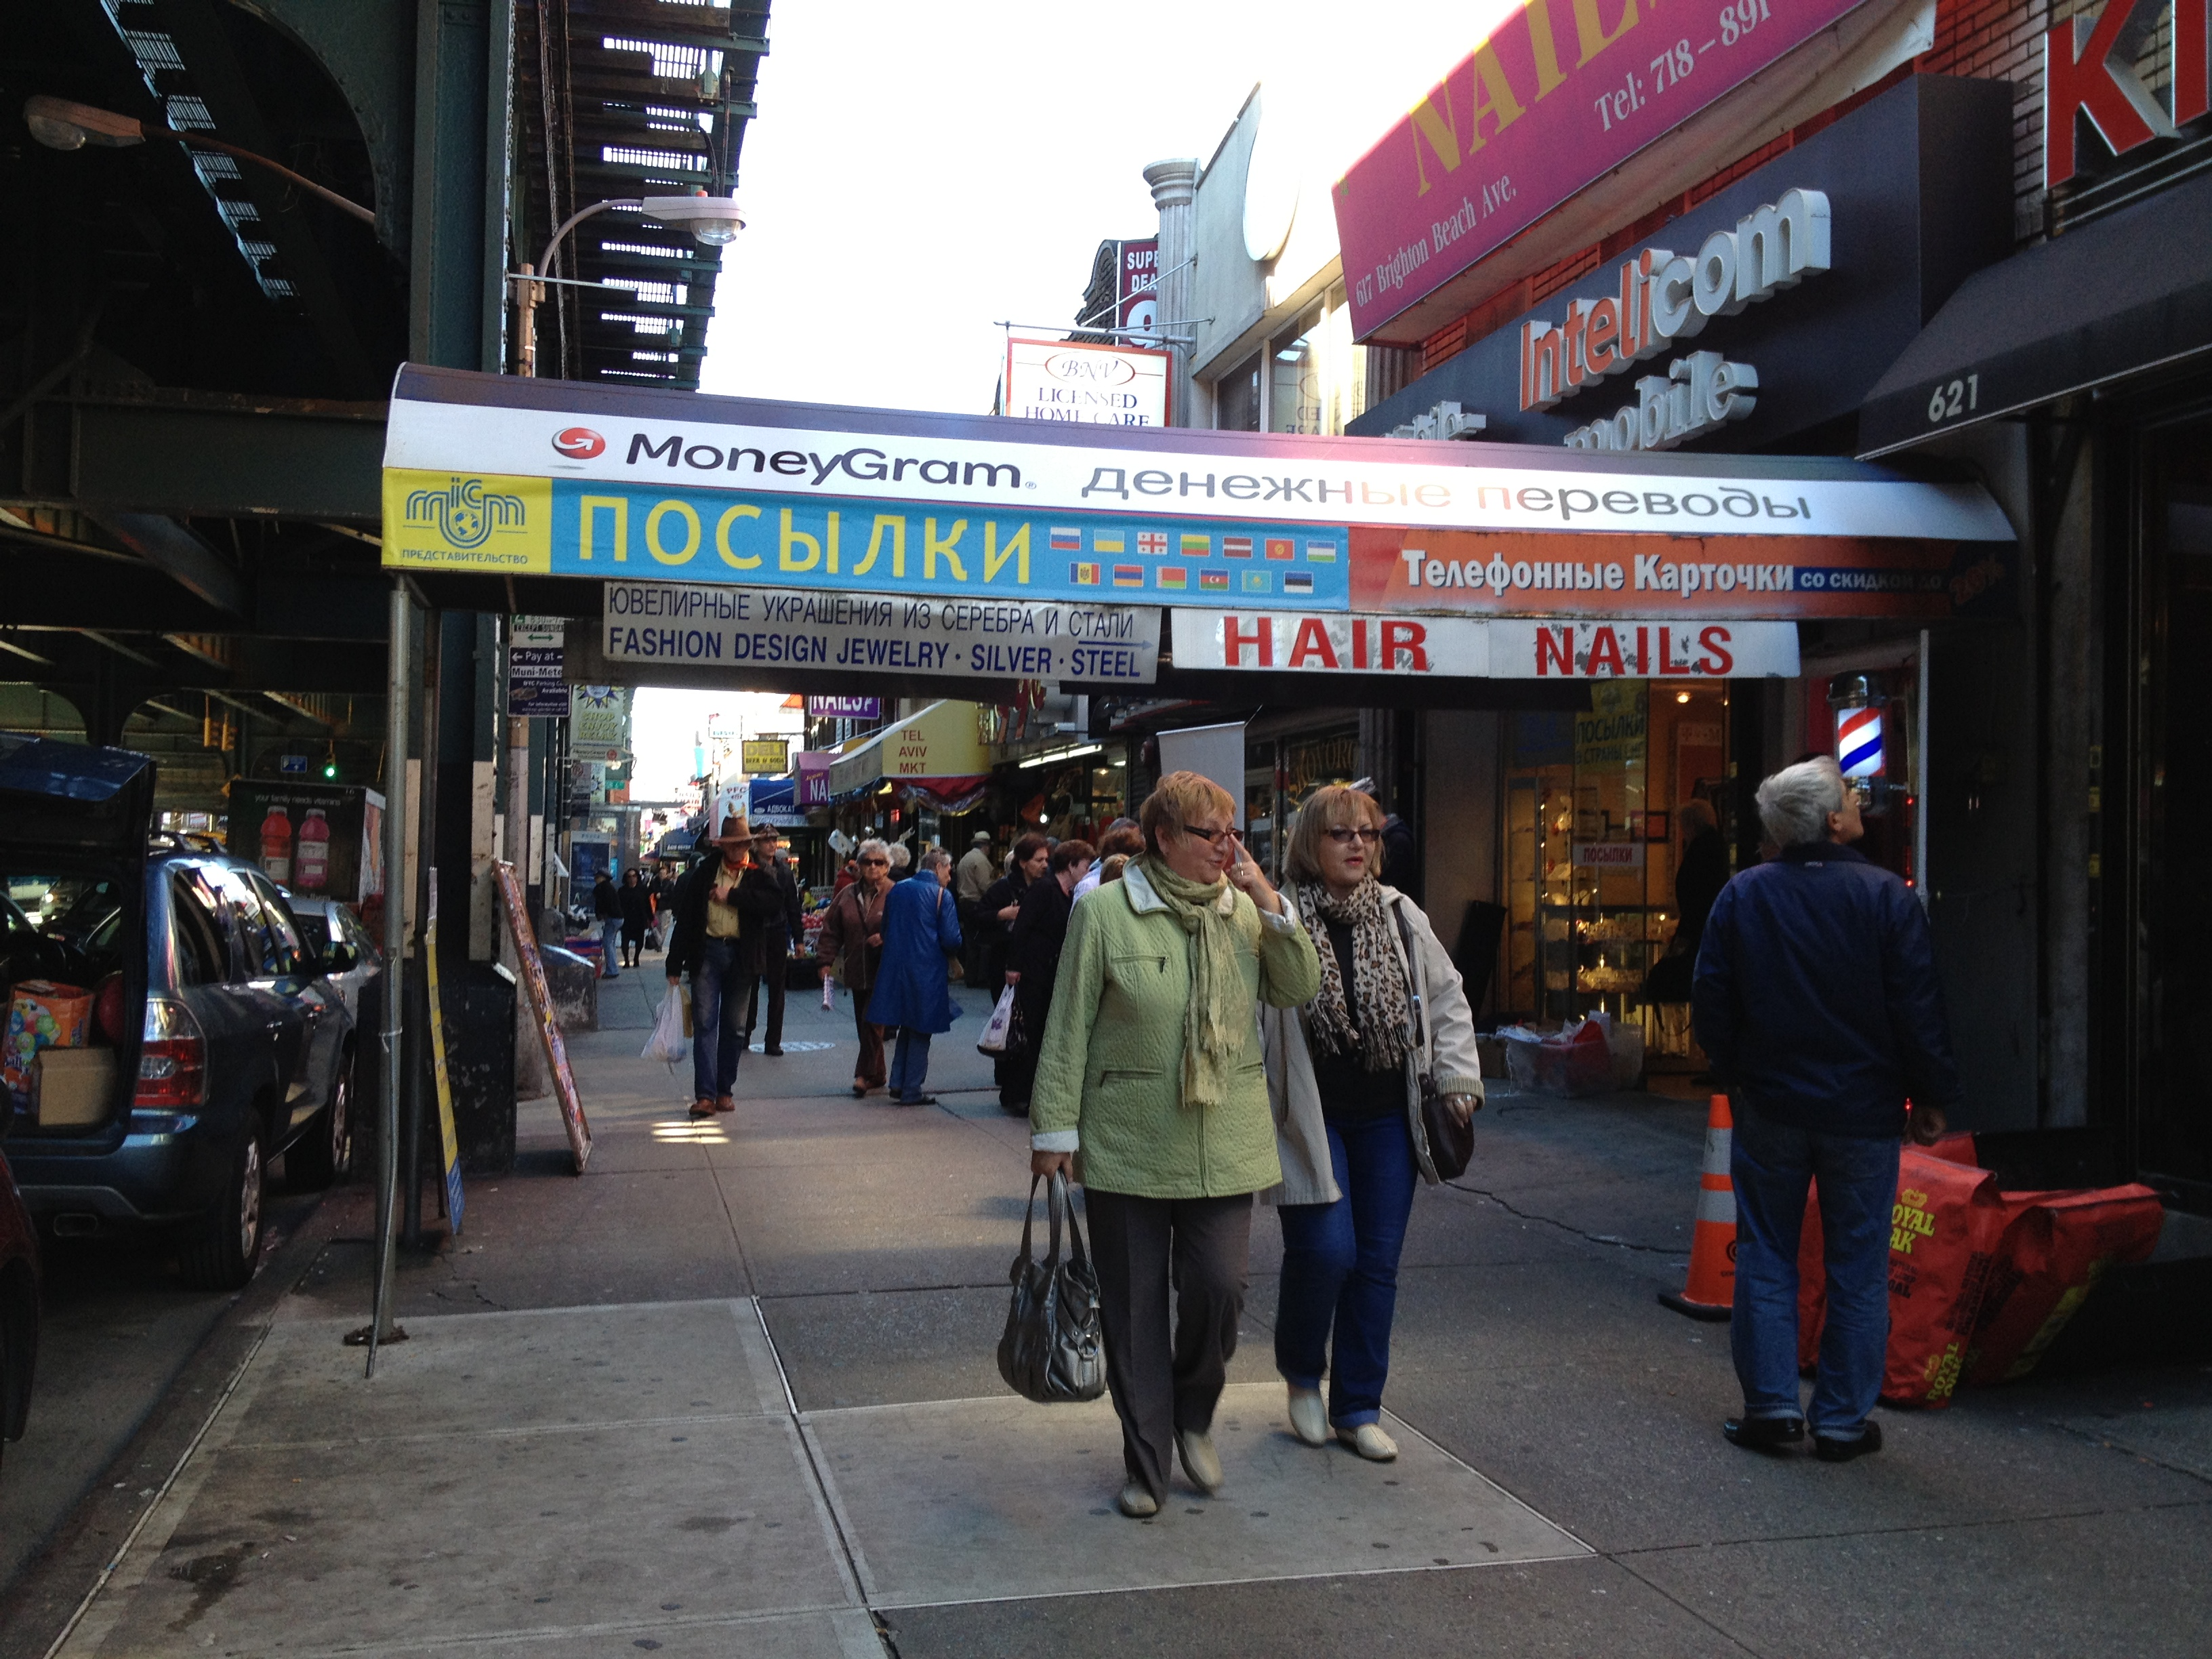 Brooklyn Academy of Music New York City, Election Language Barrier for Russian Speakers in New York City ...